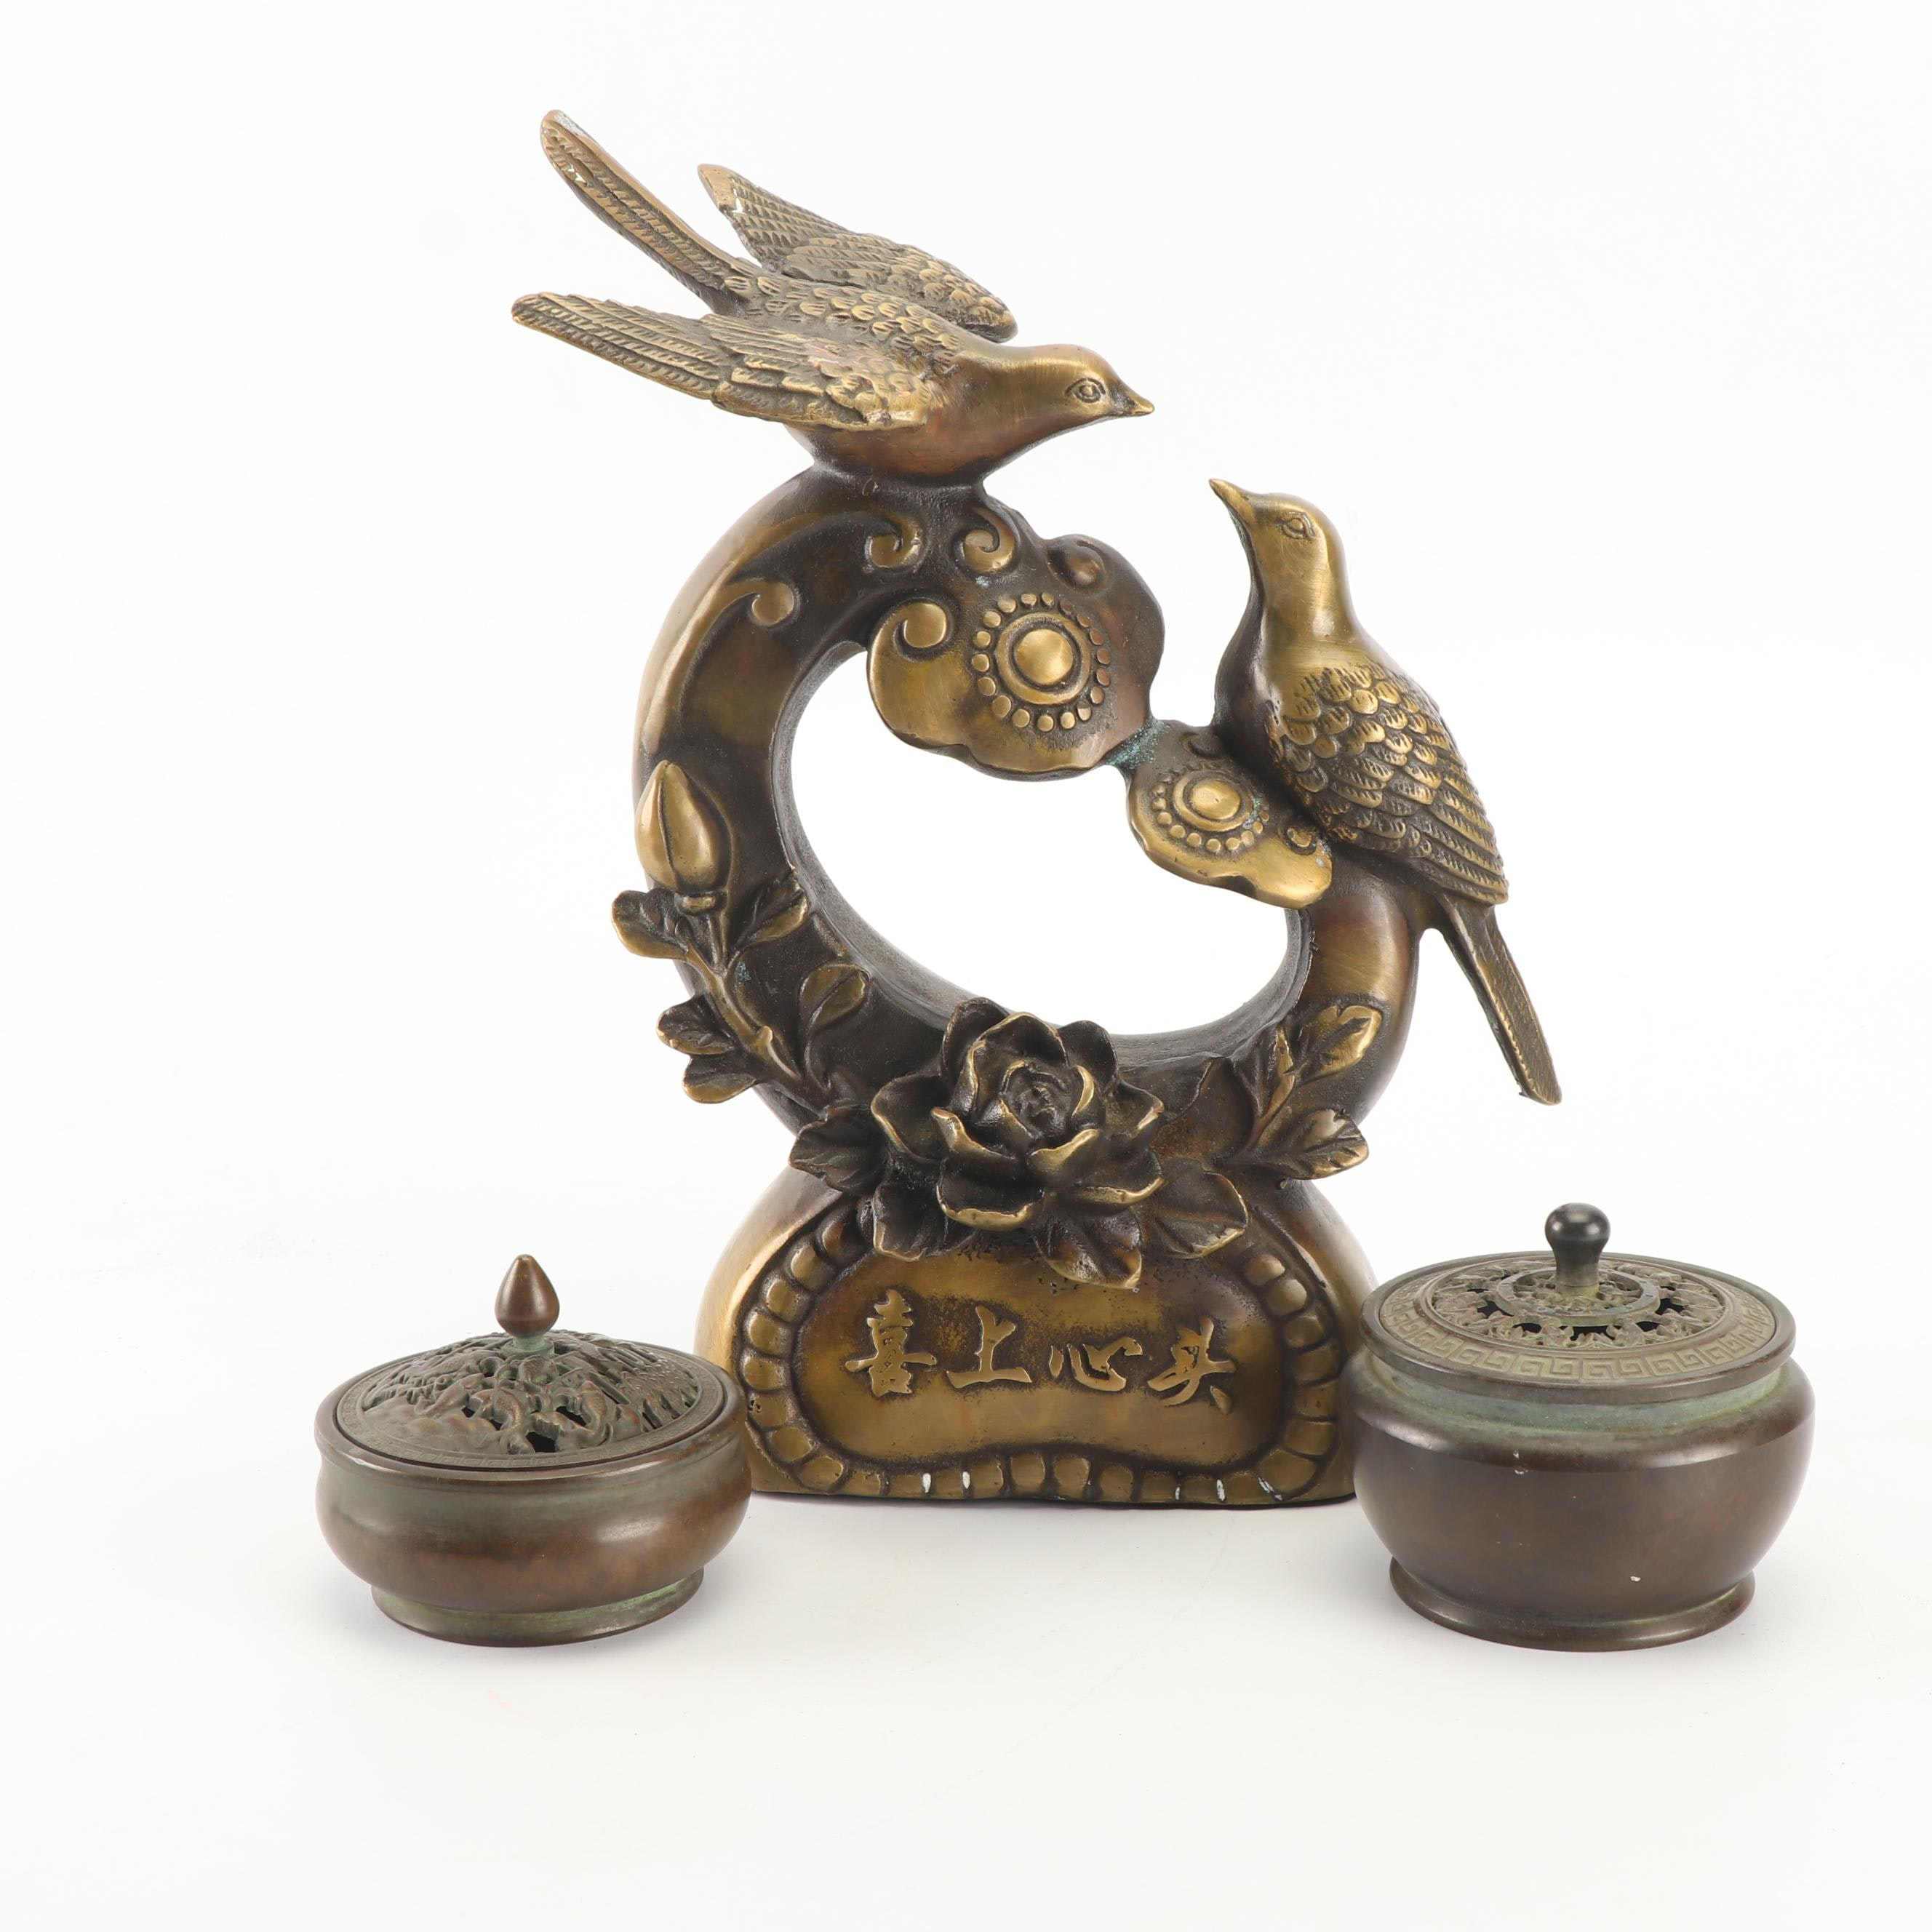 Chinese Brass Censers and Figurine